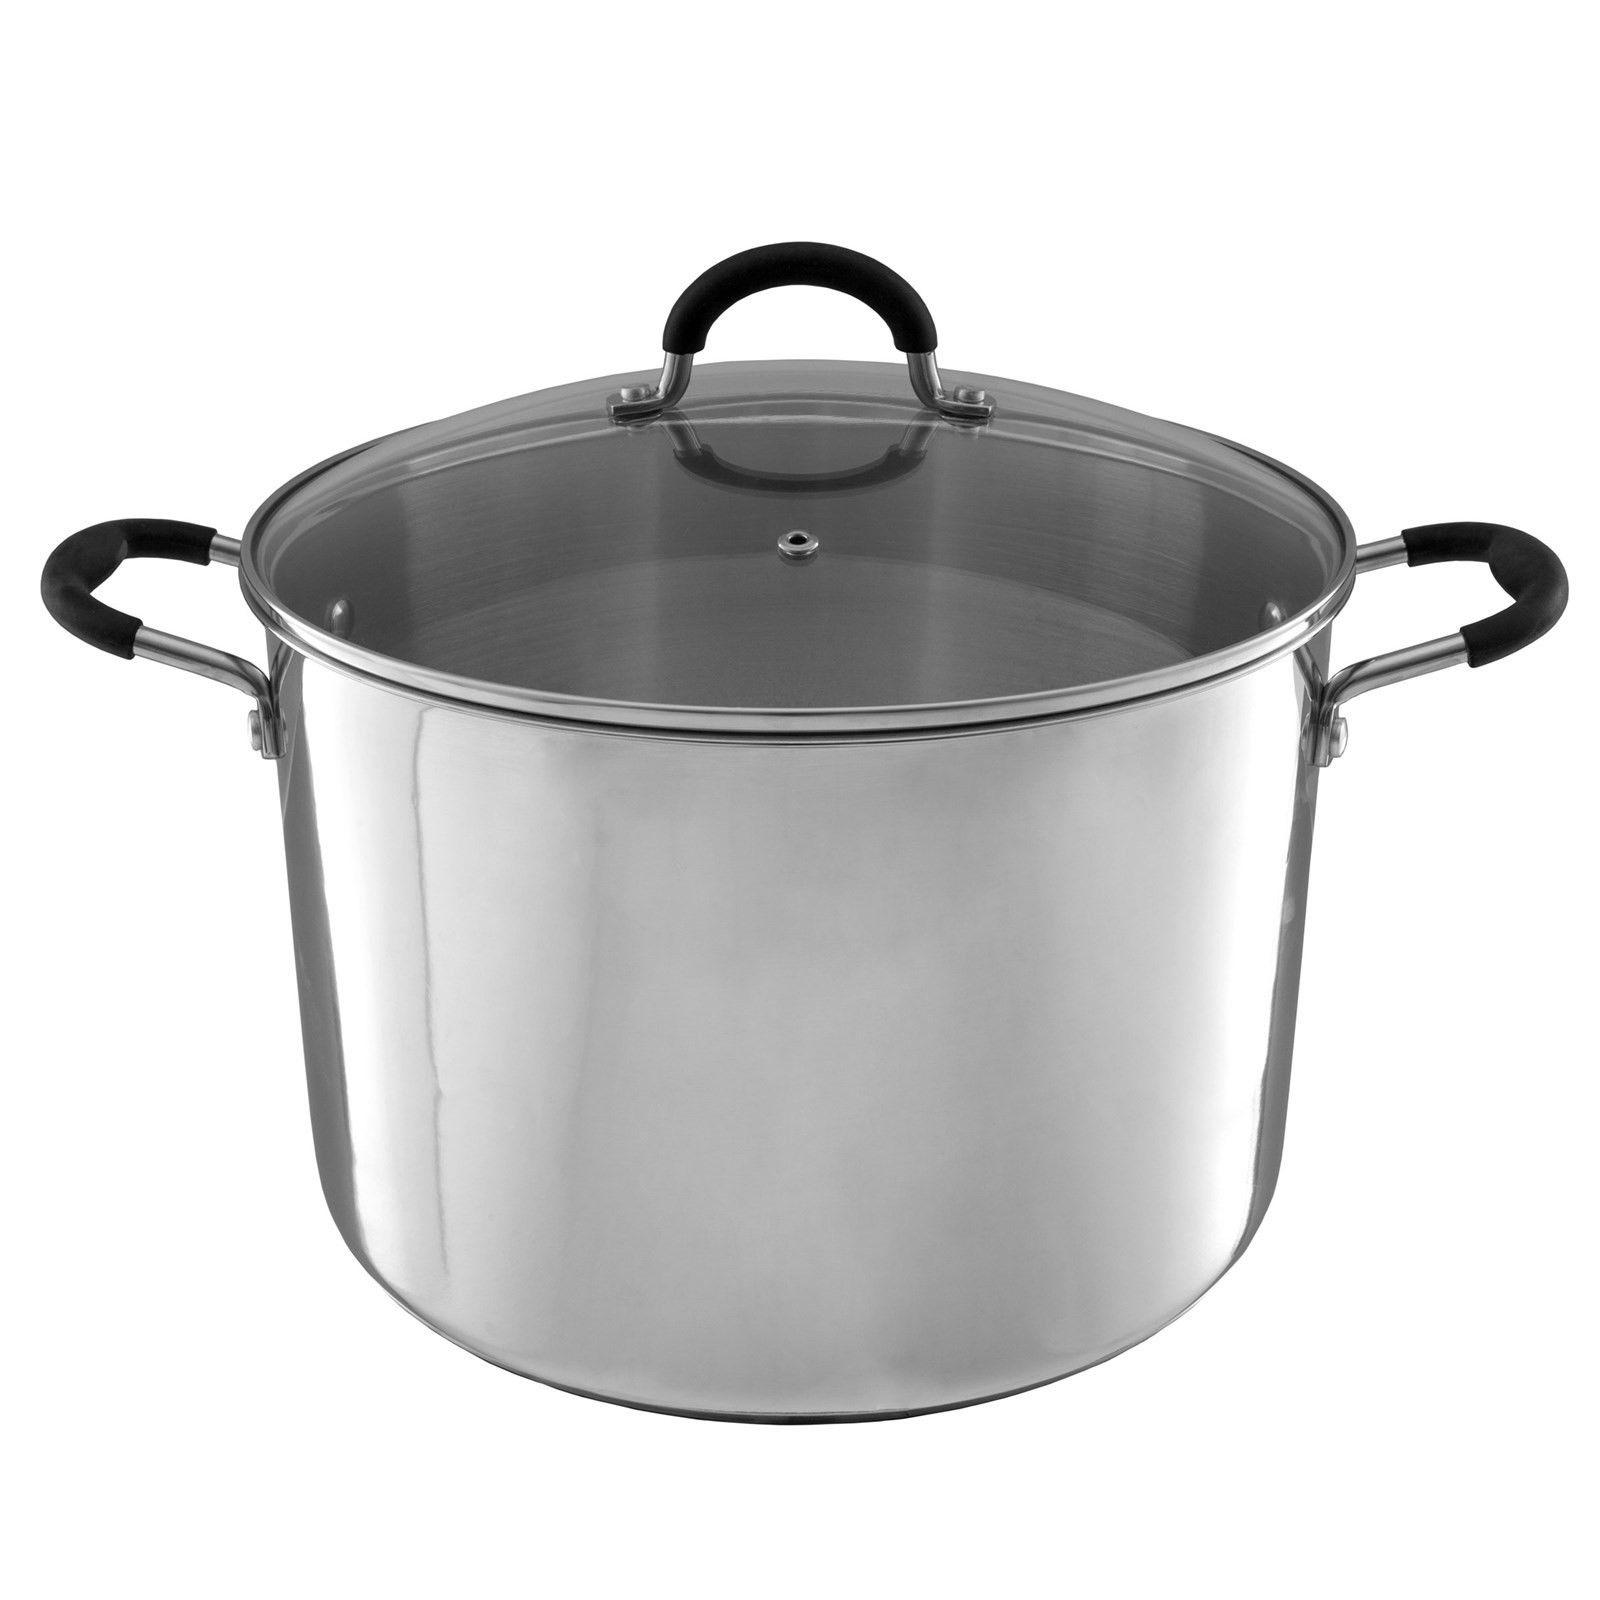 Large Stainless Steel Stock Pot with Lid Vent Hole Induction